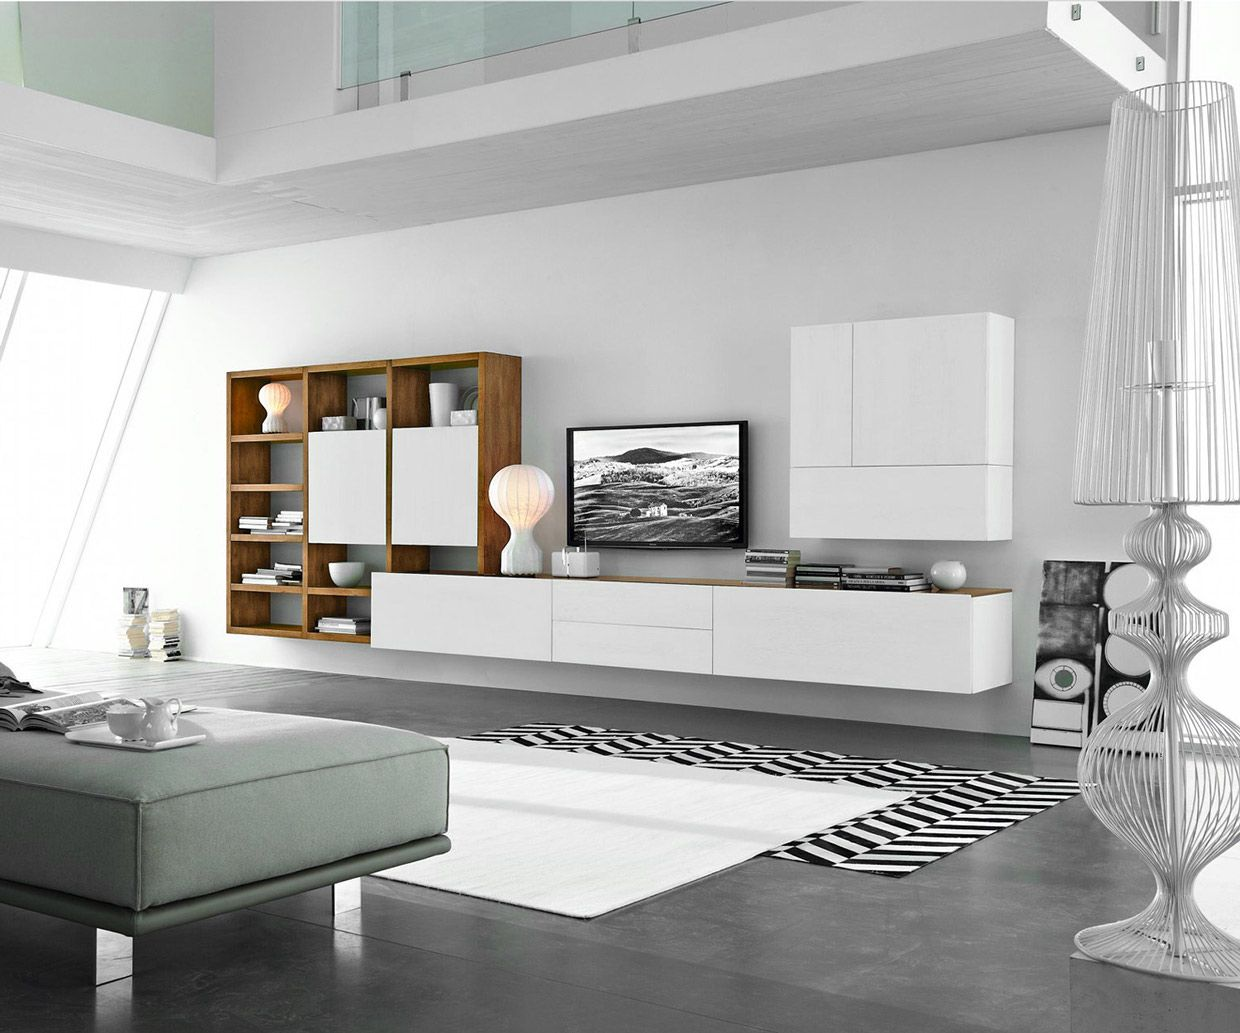 Modern Tv Walls From Fgf Mobili In Italy Made Of Sustainable Wood